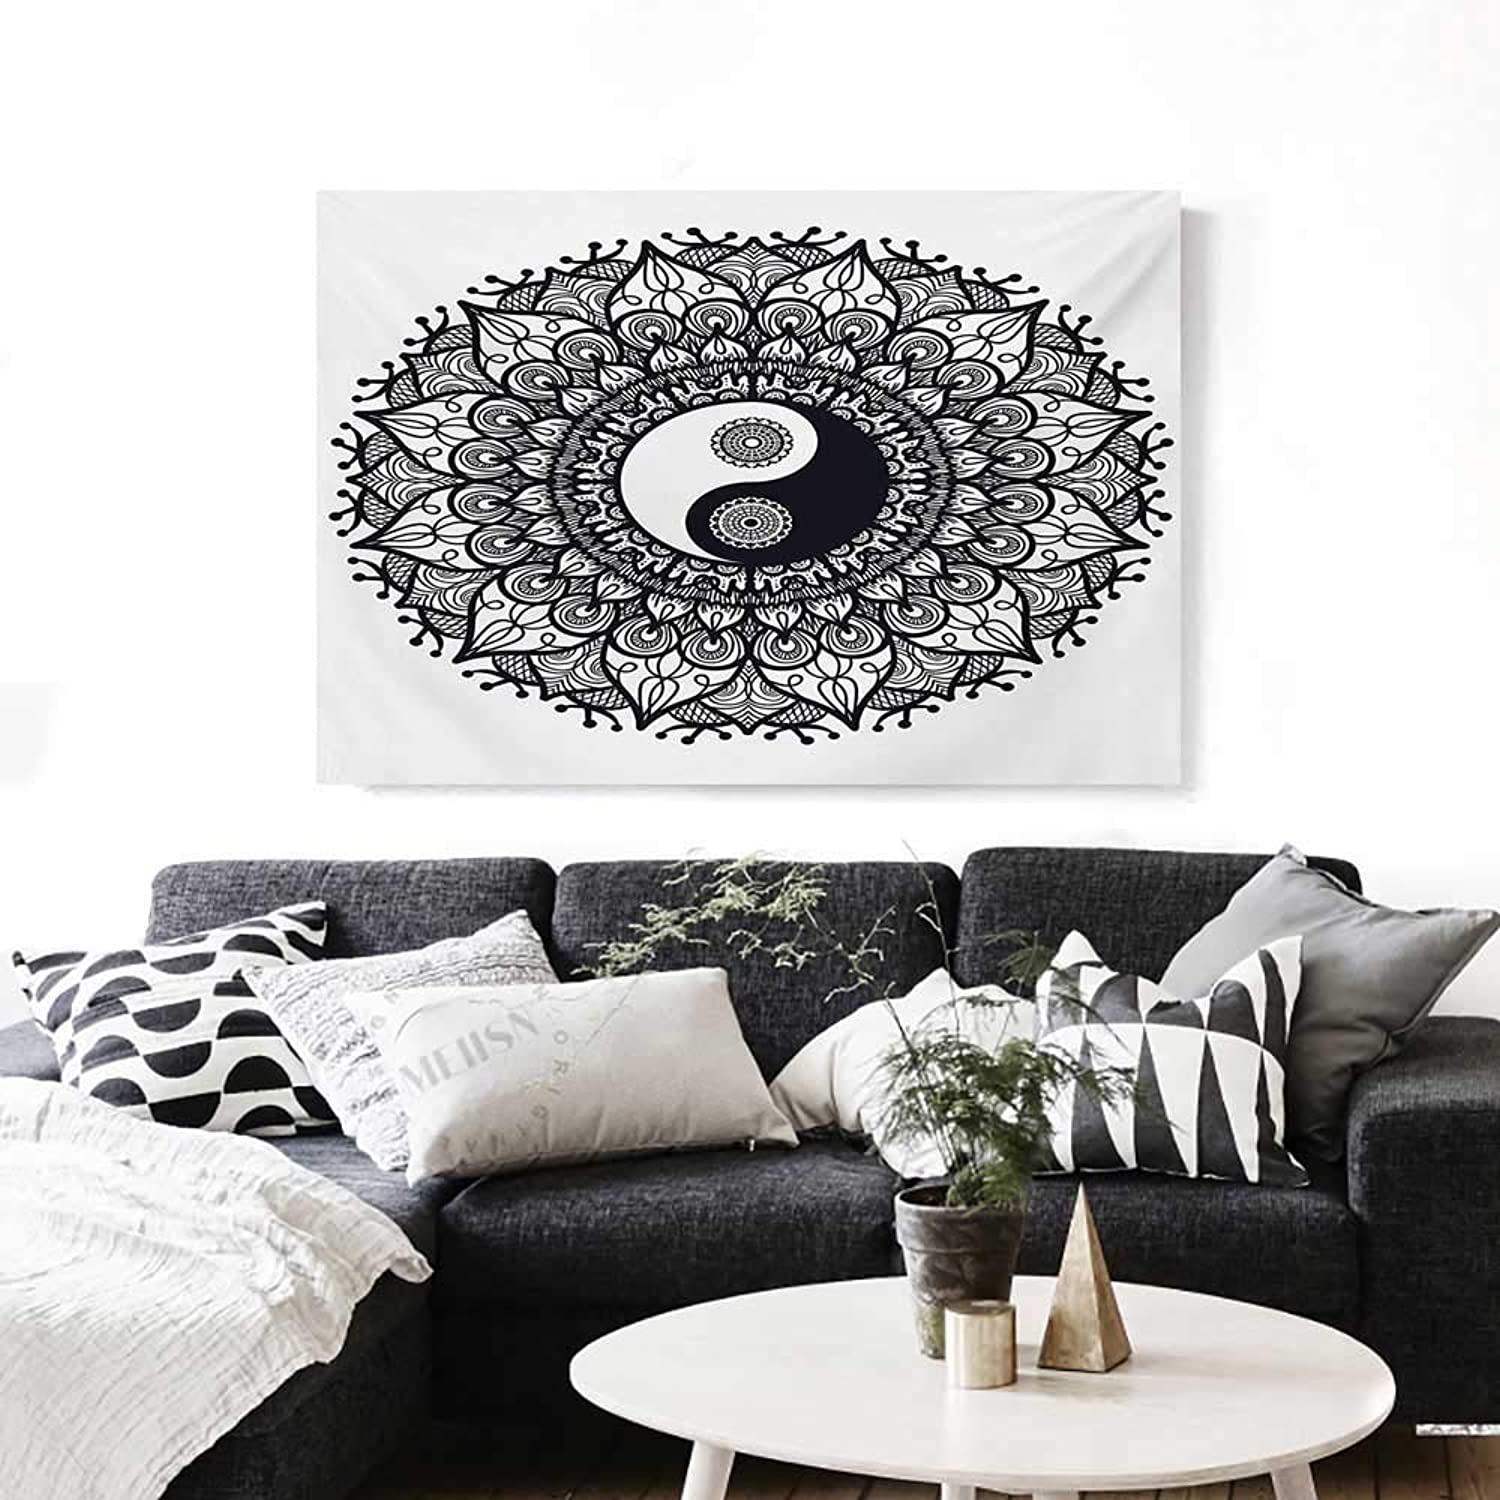 BlountDecor Ying Yang Canvas Wall Art for Bedroom Home Decorations Bohemian Style Tao Symbol in Floral Mandala Design Mehndi Ethnic Asian Art Stickers 48 x32  Charcoal Grey White